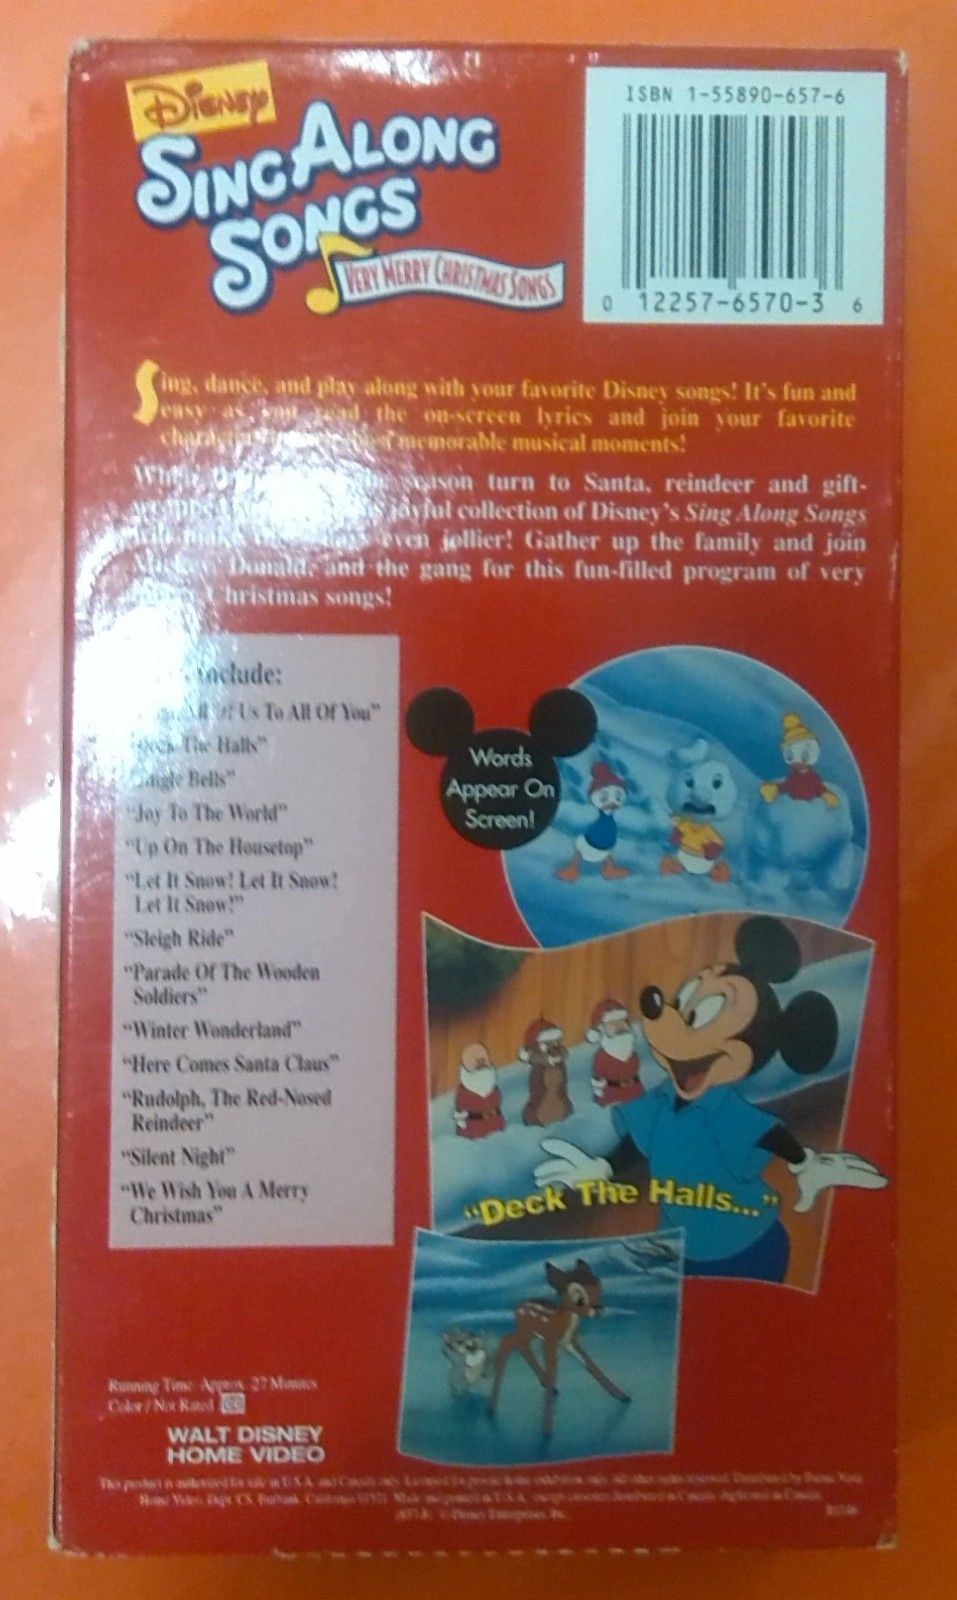 Disney Sing Along Songs Christmas Vhs.Disney S Sing Along Songs Very Merry And 16 Similar Items